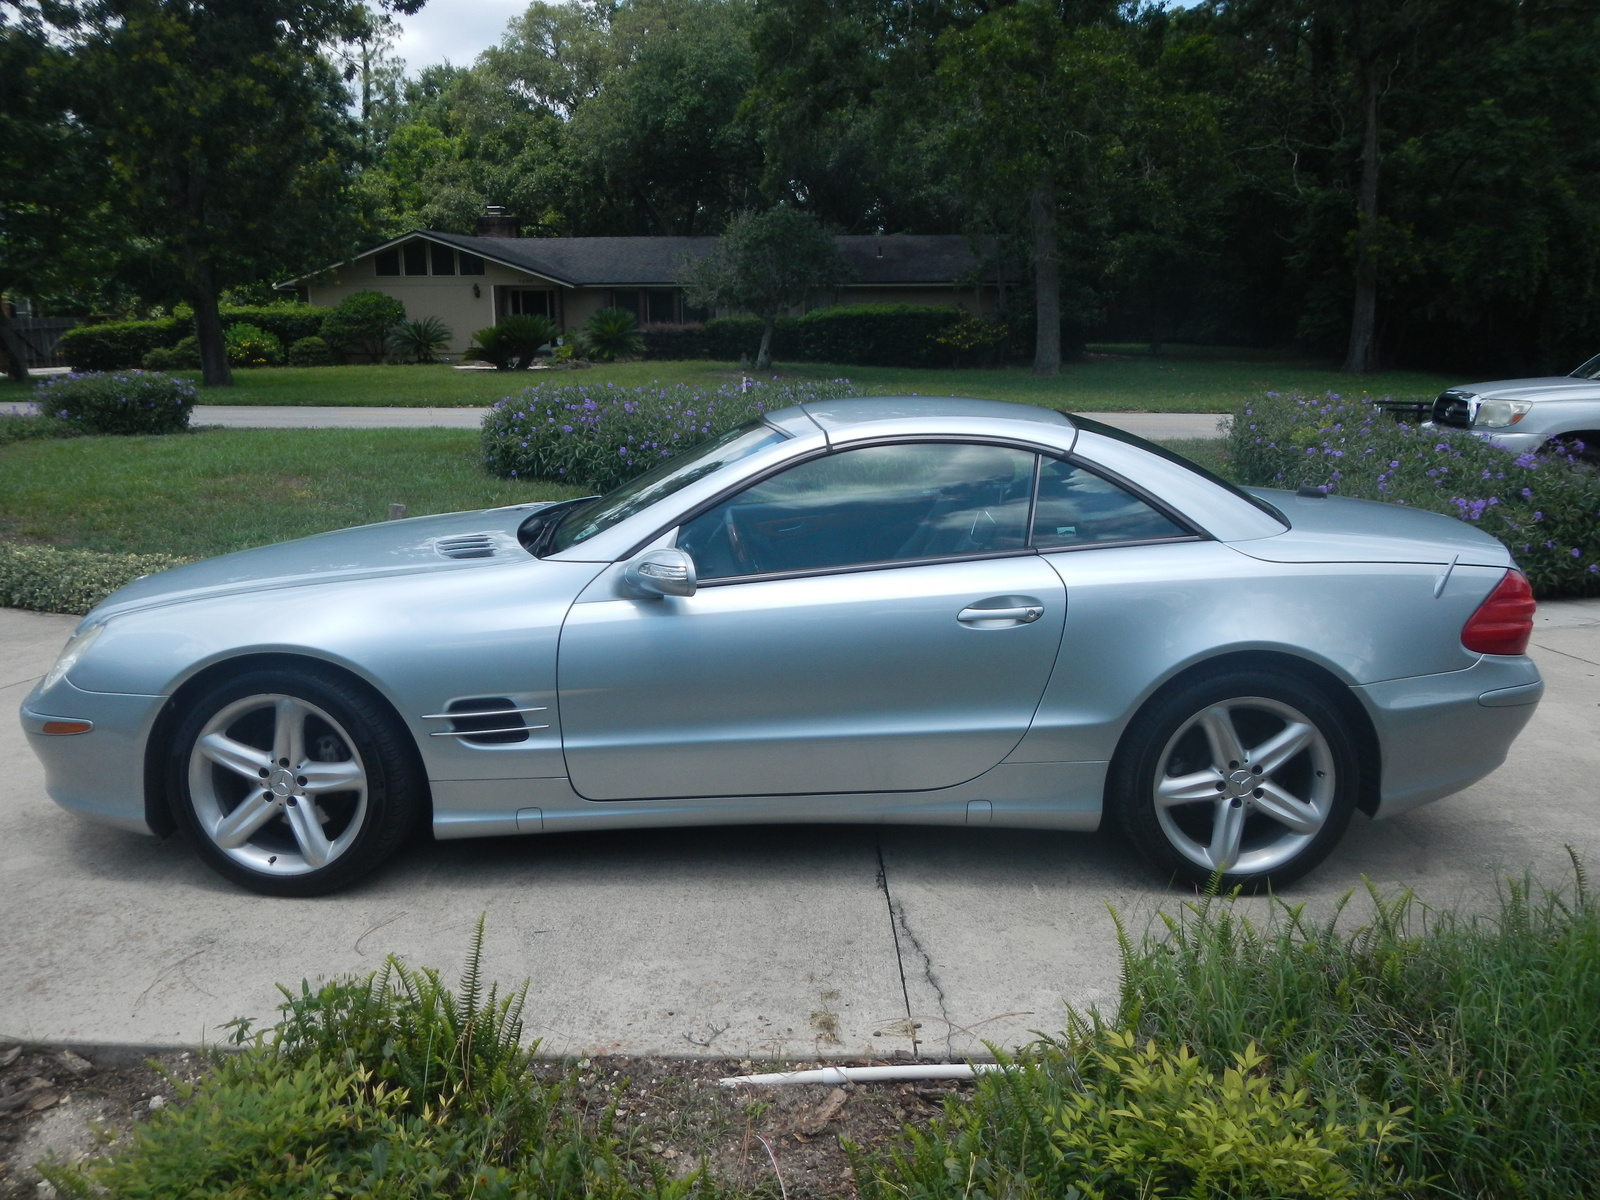 2005 mercedes benz sl class pictures cargurus for Mercedes benz sl500 price